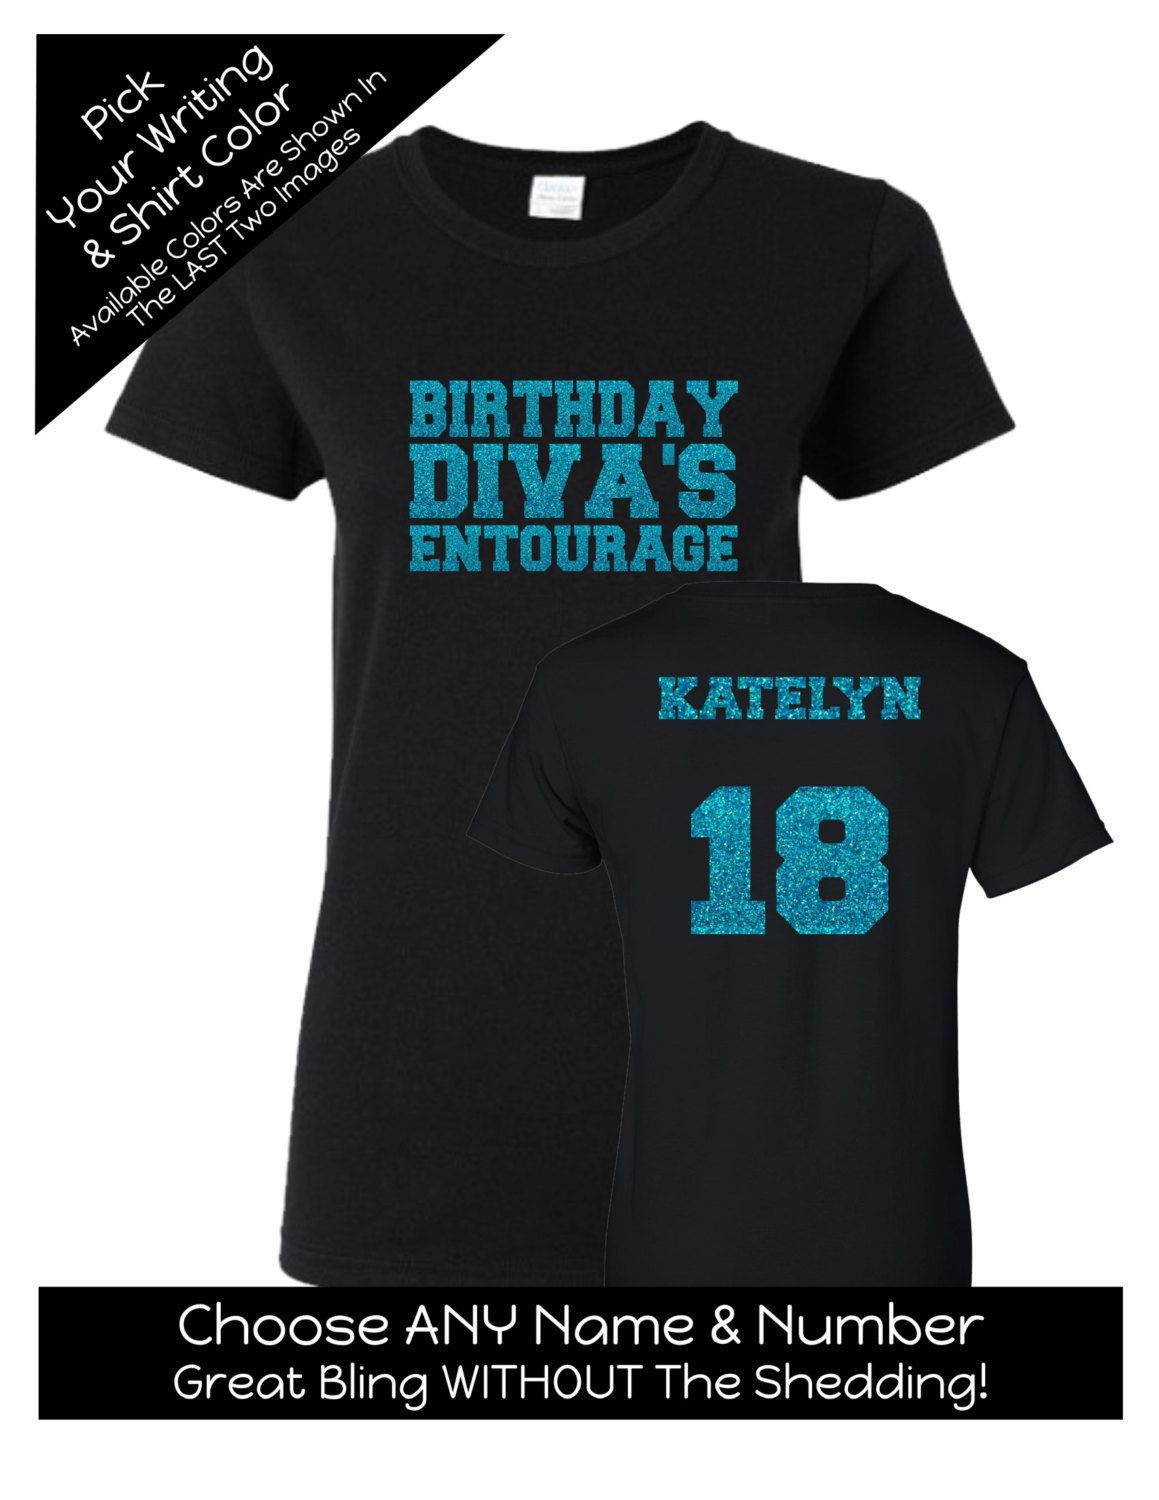 268761b4d Birthday Diva's Entourage Shirt - Personalize the Name, Age and Colors -  Match the Birthday Girl - Birthday Party by MagicalMemoriesbyJ on Etsy